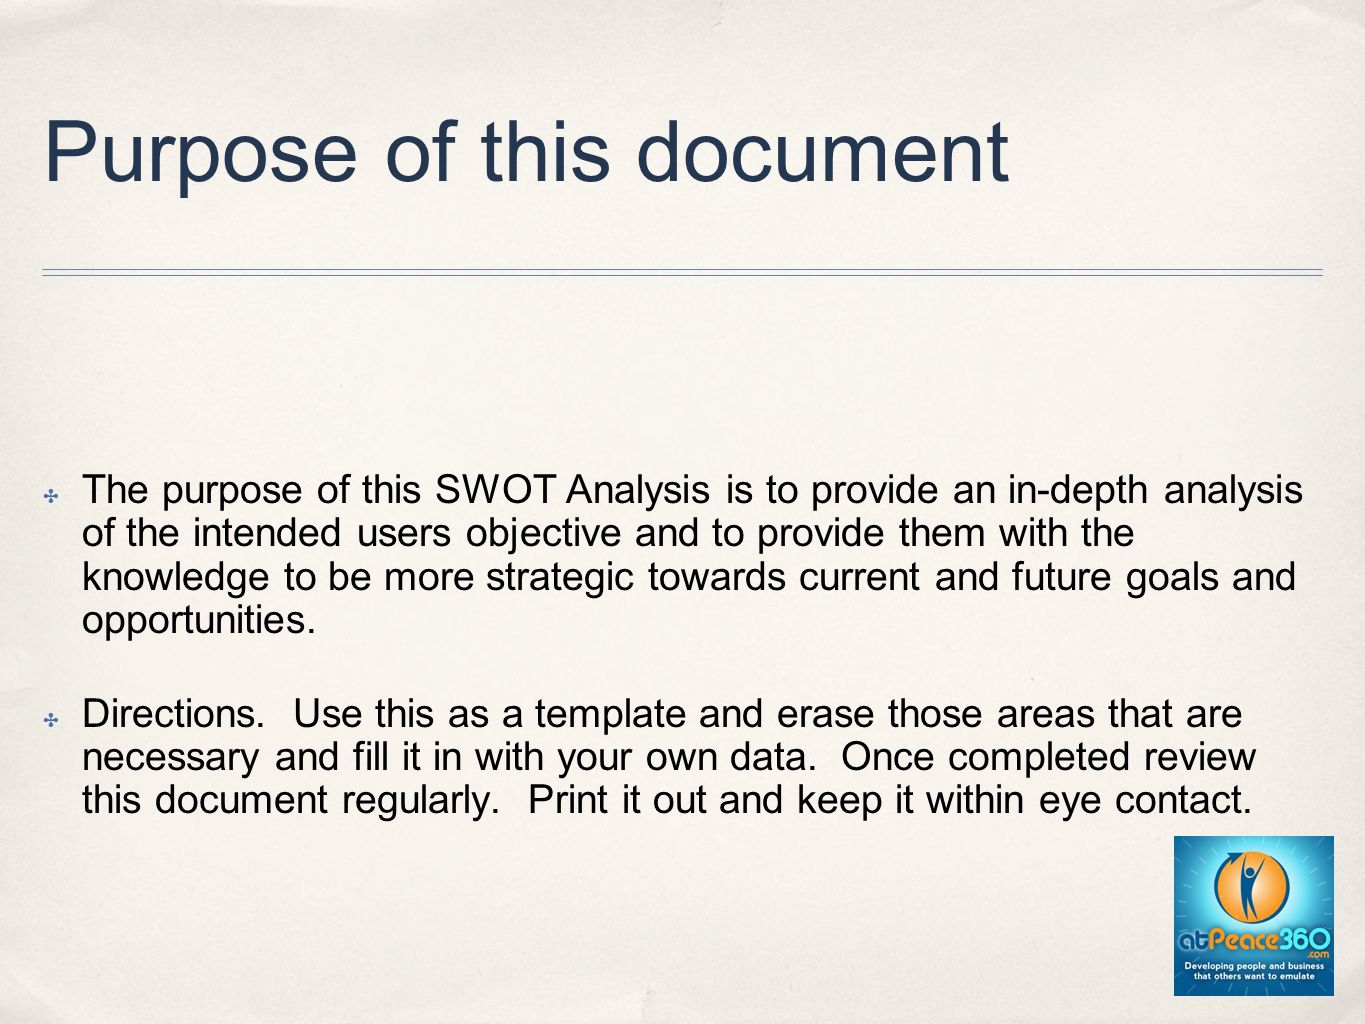 Purpose of this document The purpose of this SWOT Analysis is to provide an in-depth analysis of the intended users objective and to provide them with the knowledge to be more strategic towards current and future goals and opportunities.